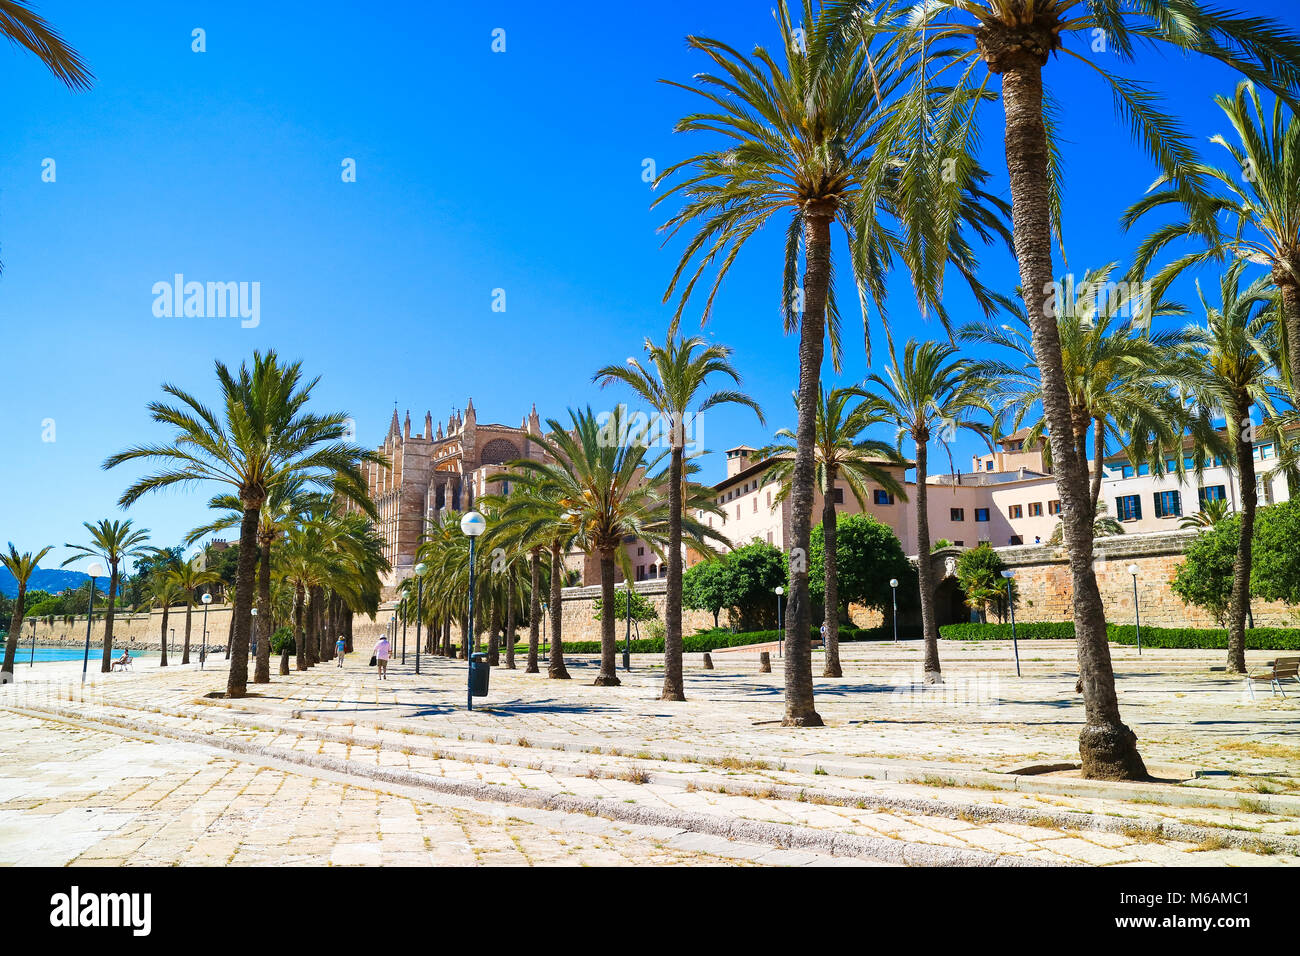 Palma de Mallorca, Spain. Central park with palm trees in the summer - Stock Image